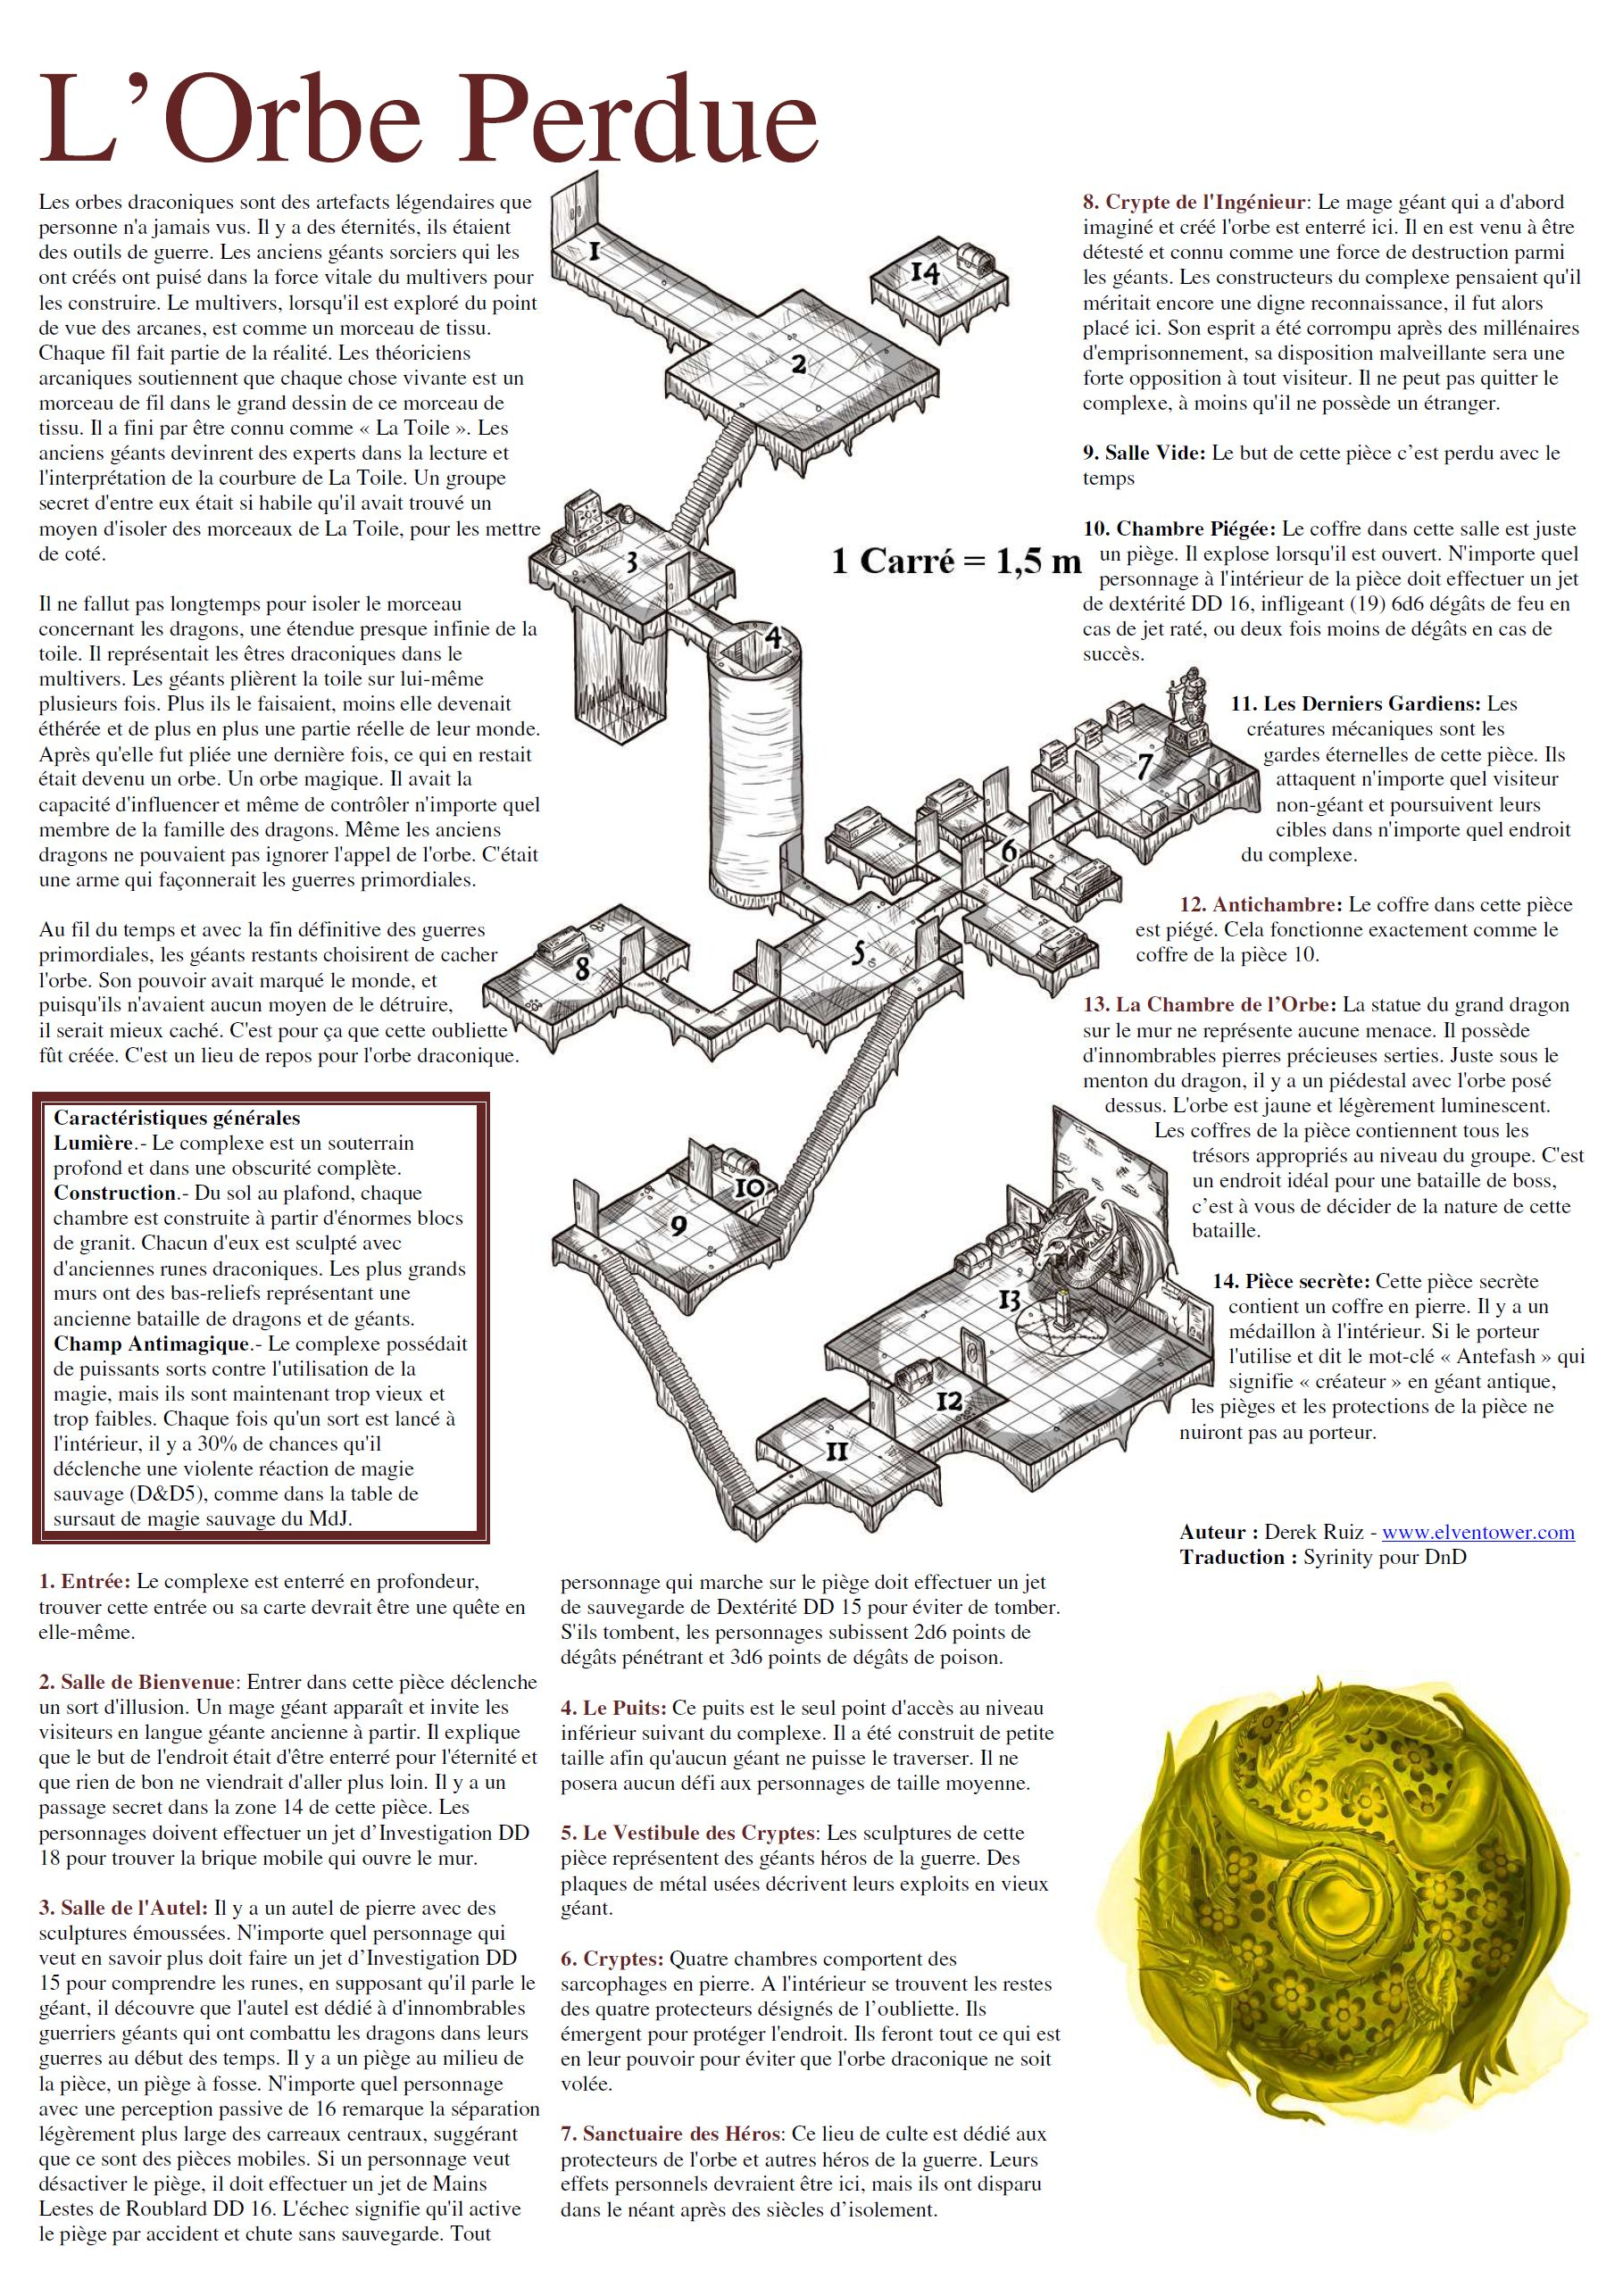 Taille Moyenne D Une Chambre pinbruce hays on rpg paper minis in 2020 | fantasy